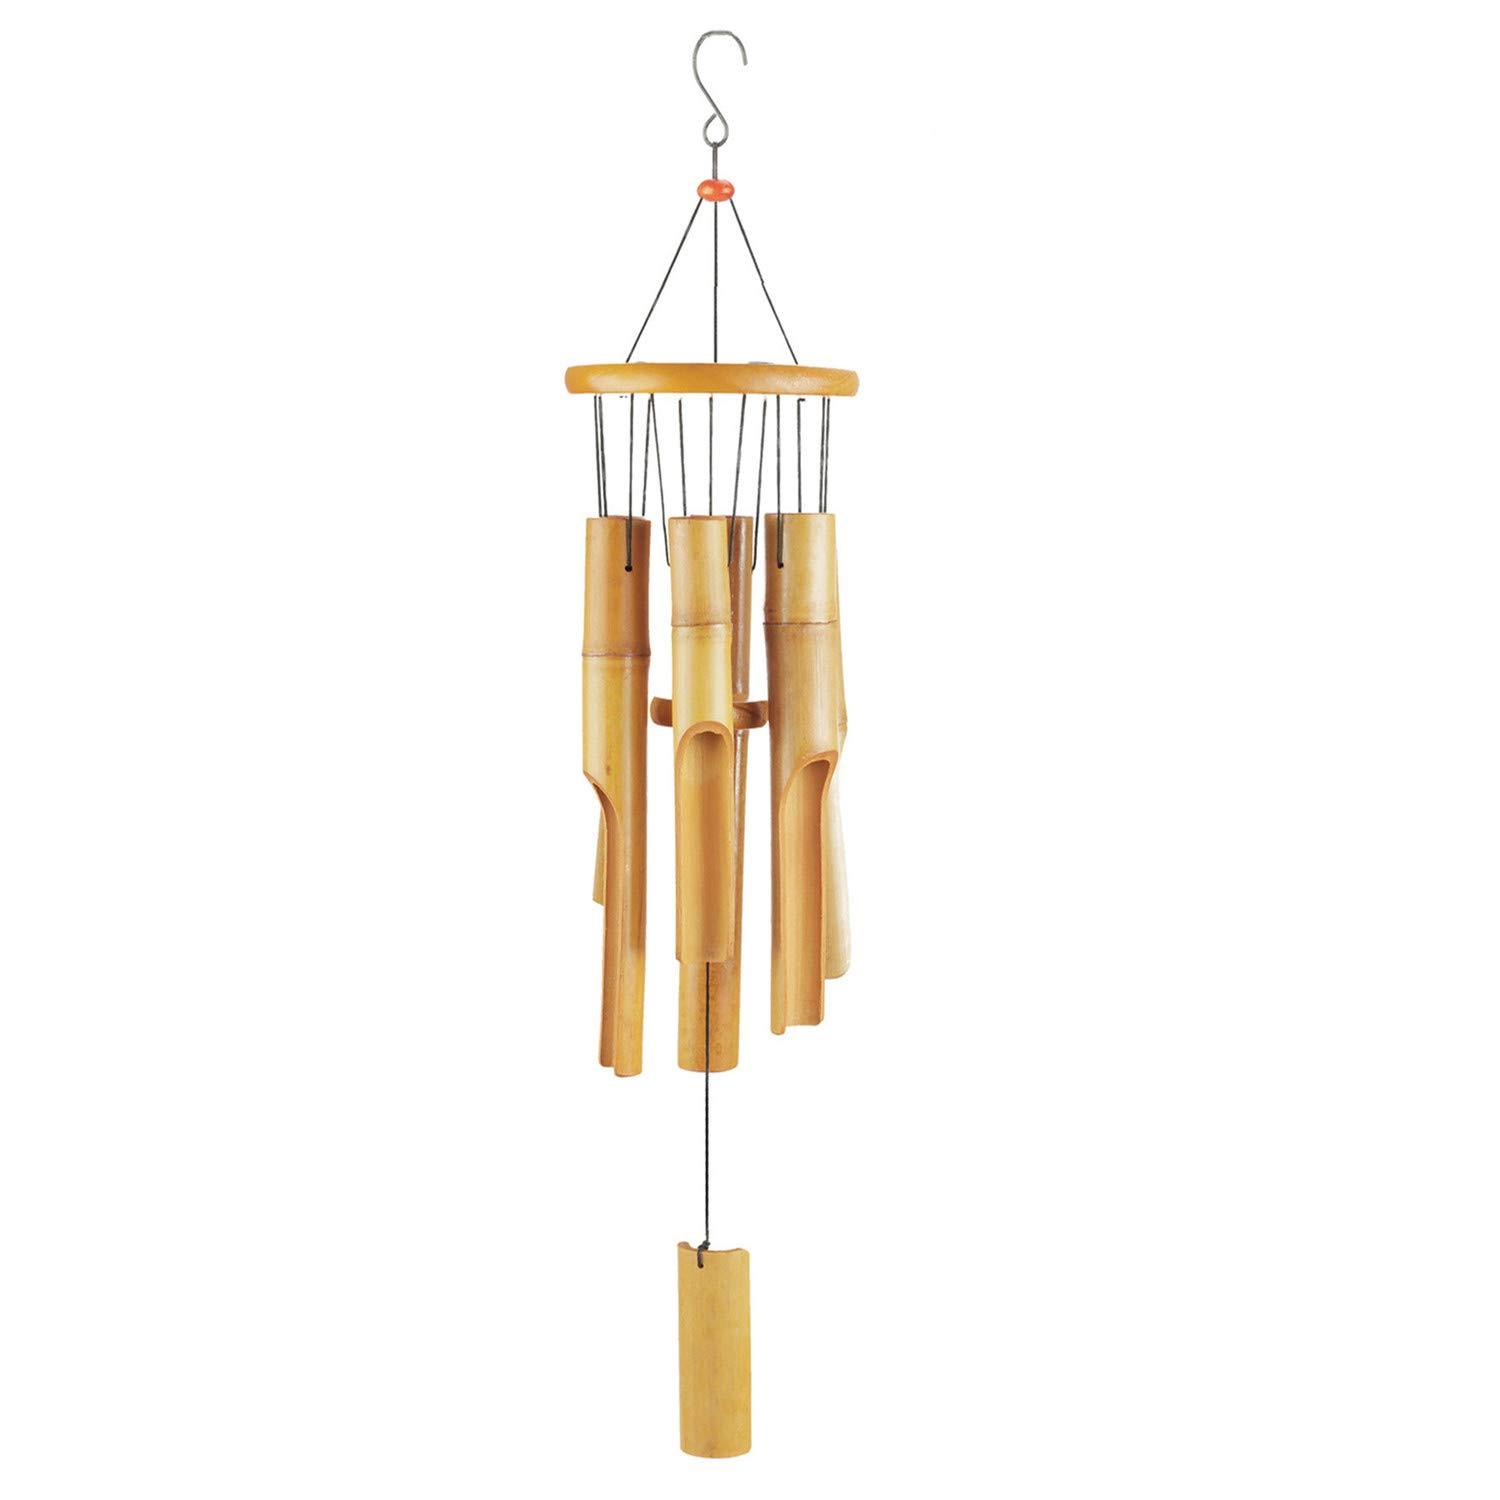 DateDirect Bamboo Wind Chimes - Wood Wind Chime - Large Indoor Outdoor Wooden - 32'' Wind Chimes for Garden, Yark,Patio and Home Décor